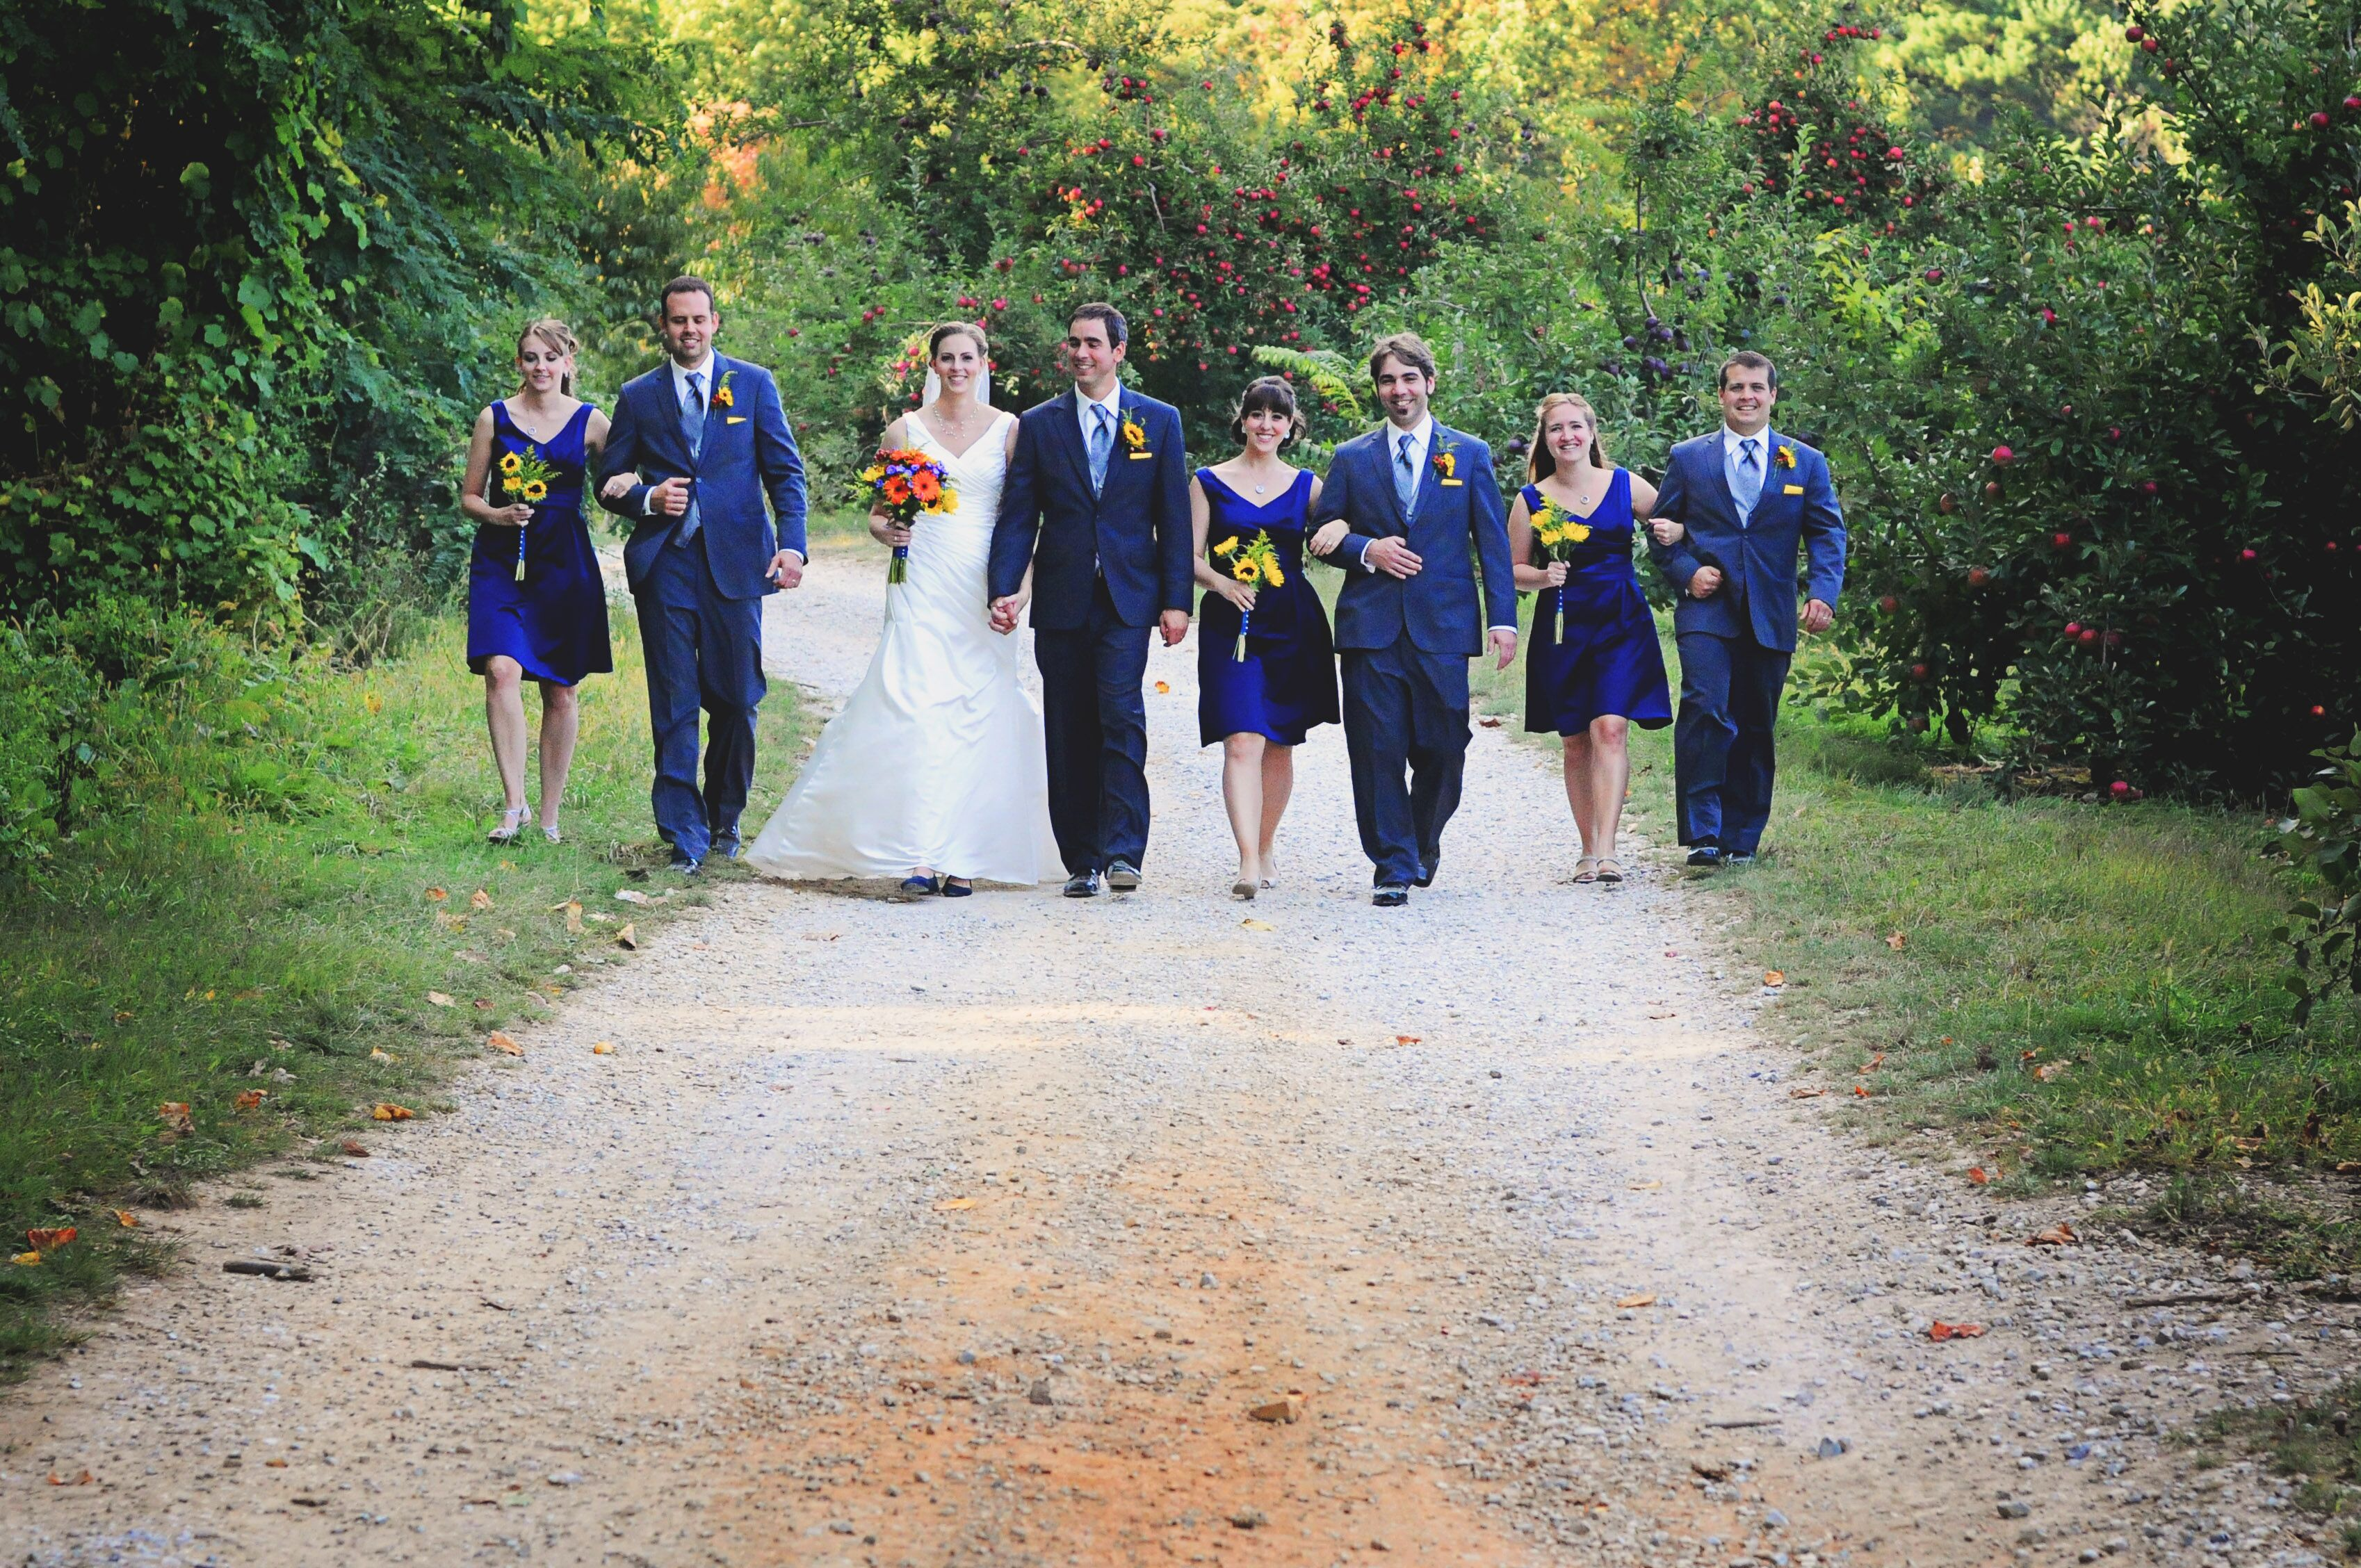 Fashion style Bridesmaid navy dresses and gray suits for lady